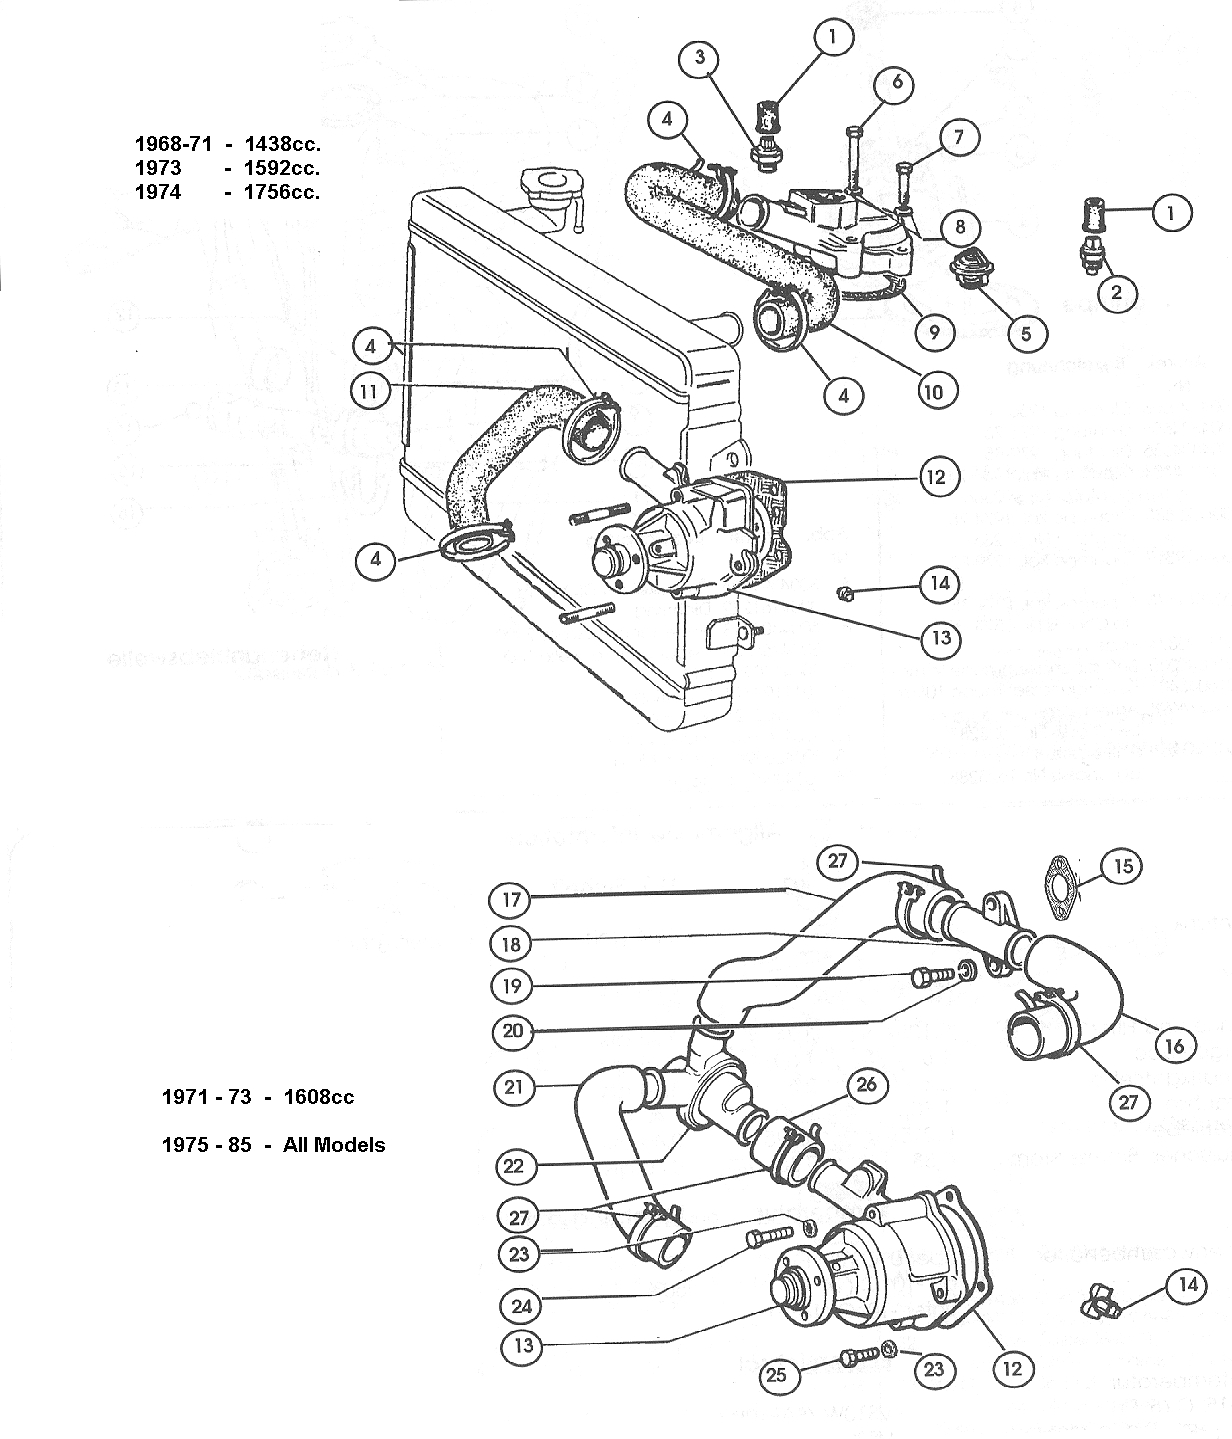 Fiat Engine Cooling Diagram Wiring Library 124 System 500 And Classic Abarth Specialists Middle Barton Garage